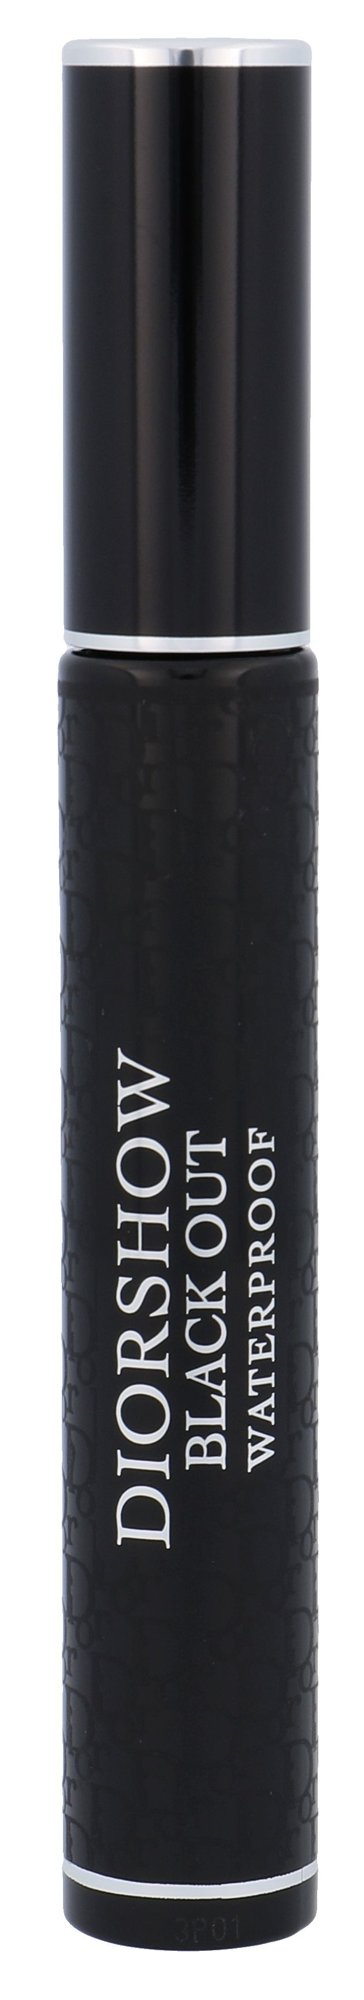 Christian Dior Diorshow Iconic Cosmetic 8ml 698 Brown